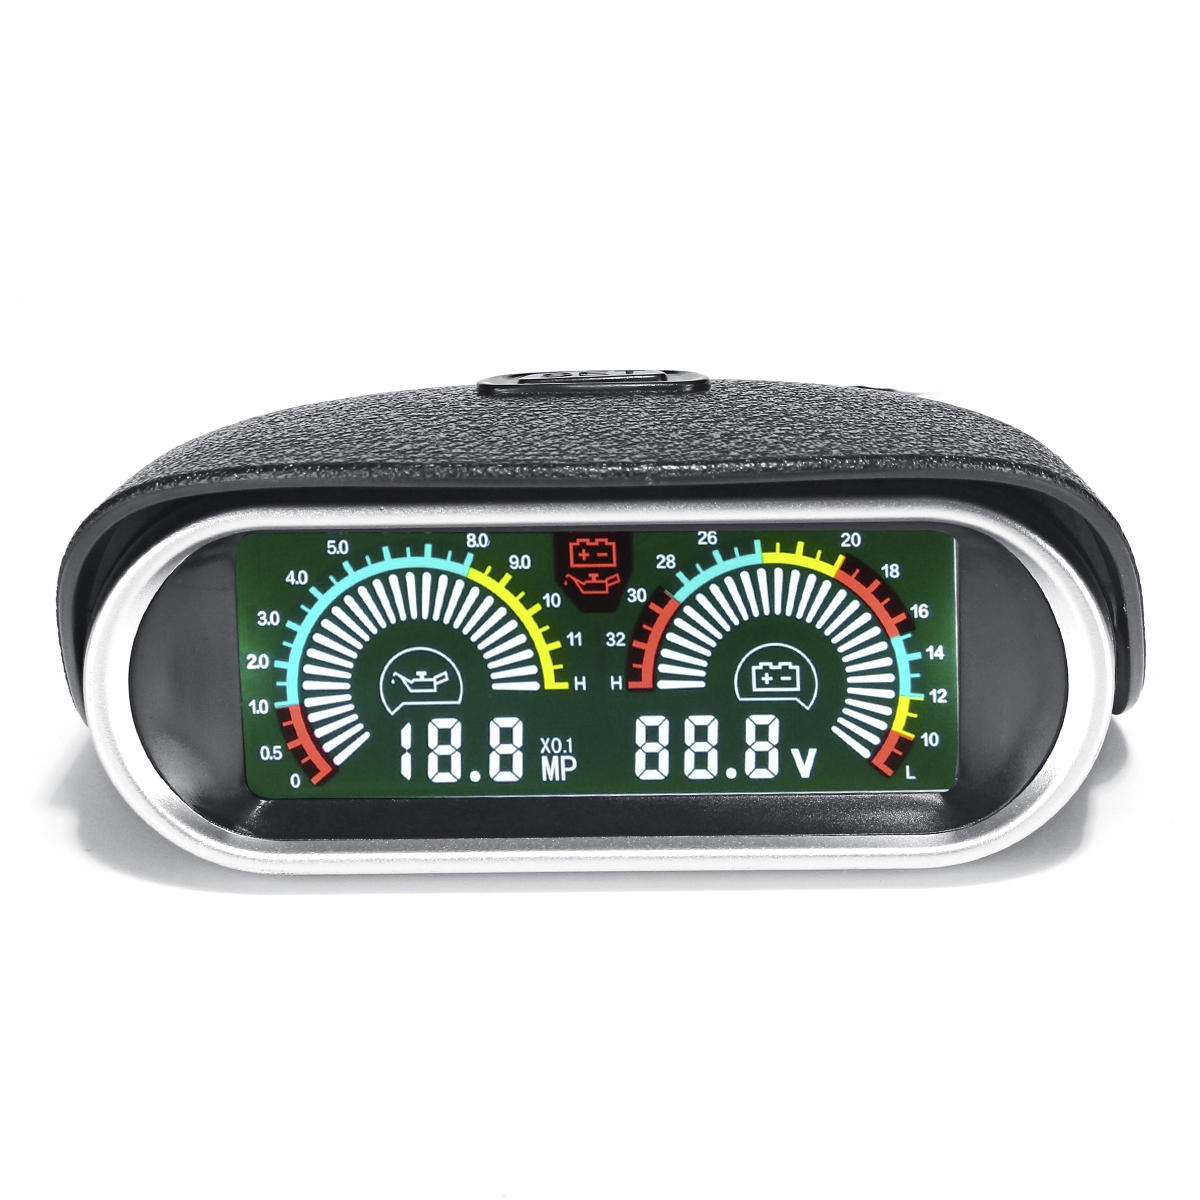 2in1 LCD Digital Engine Gauge Horizontal Oil Voltage Meter with 1/8 NPT Sensor DC 9-36V For Boat Car Truck